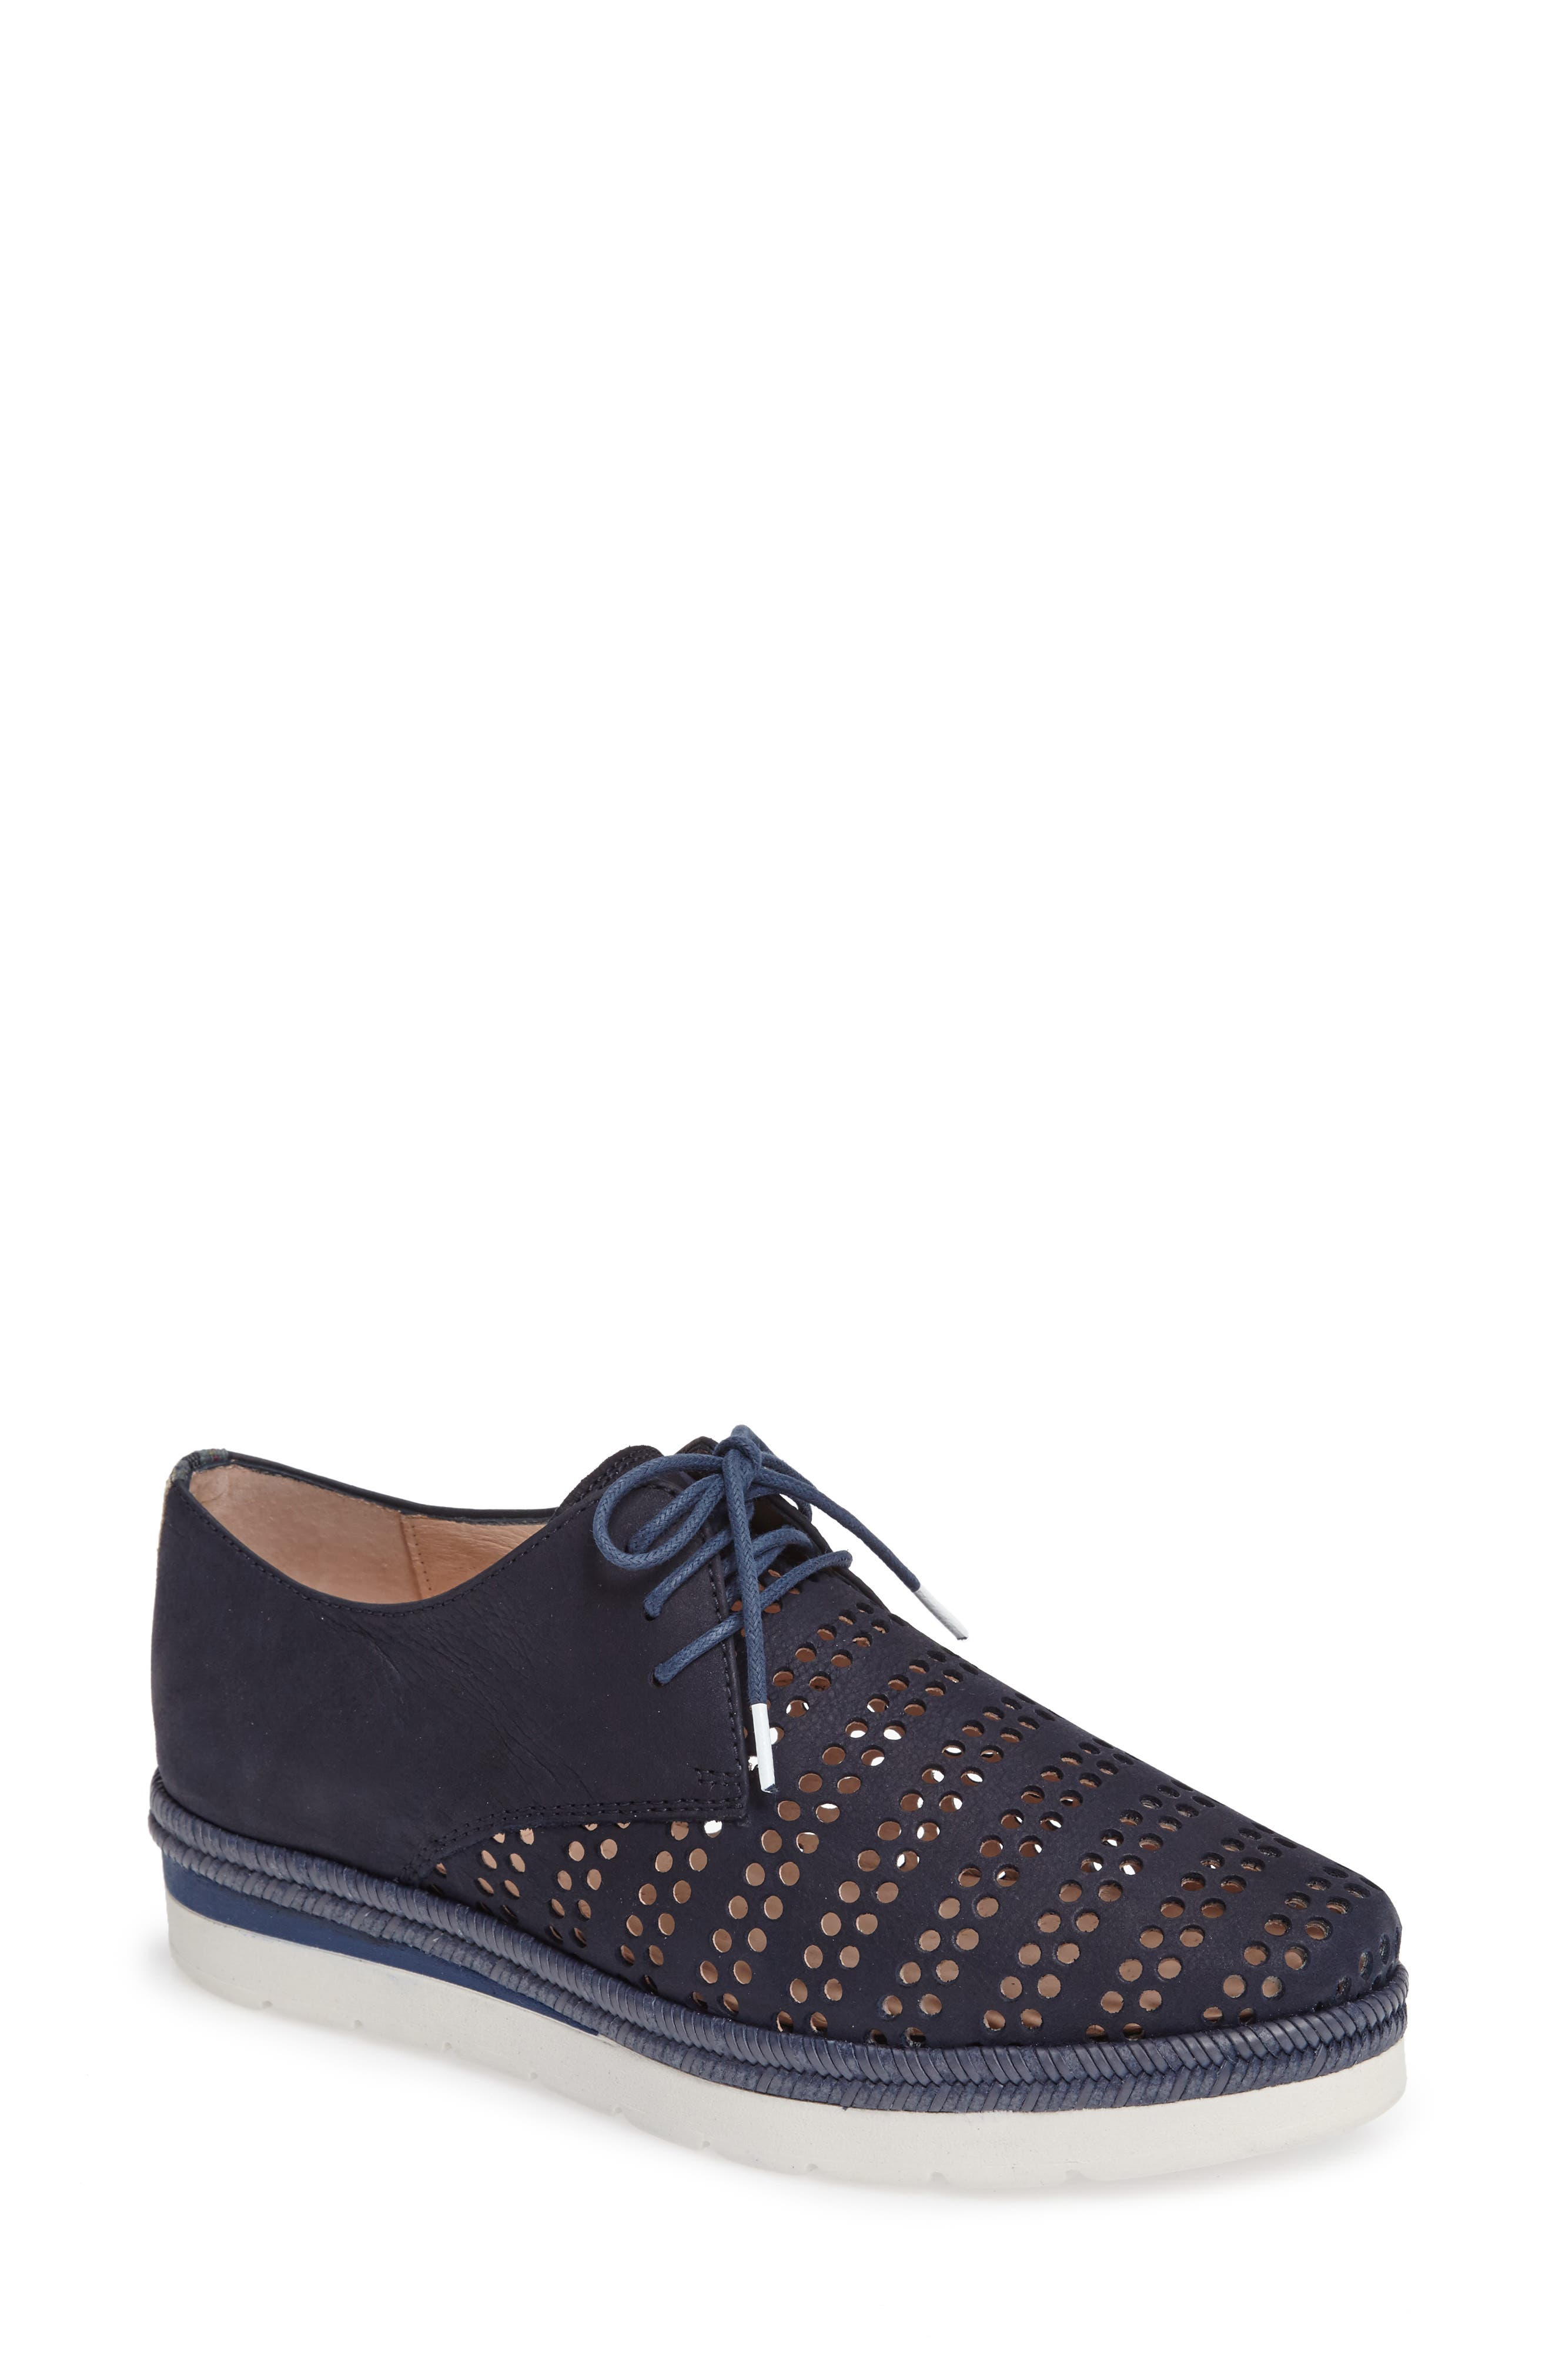 'Laken' Perforated Platform Derby,                             Main thumbnail 1, color,                             PEACH JEANS LEATHER